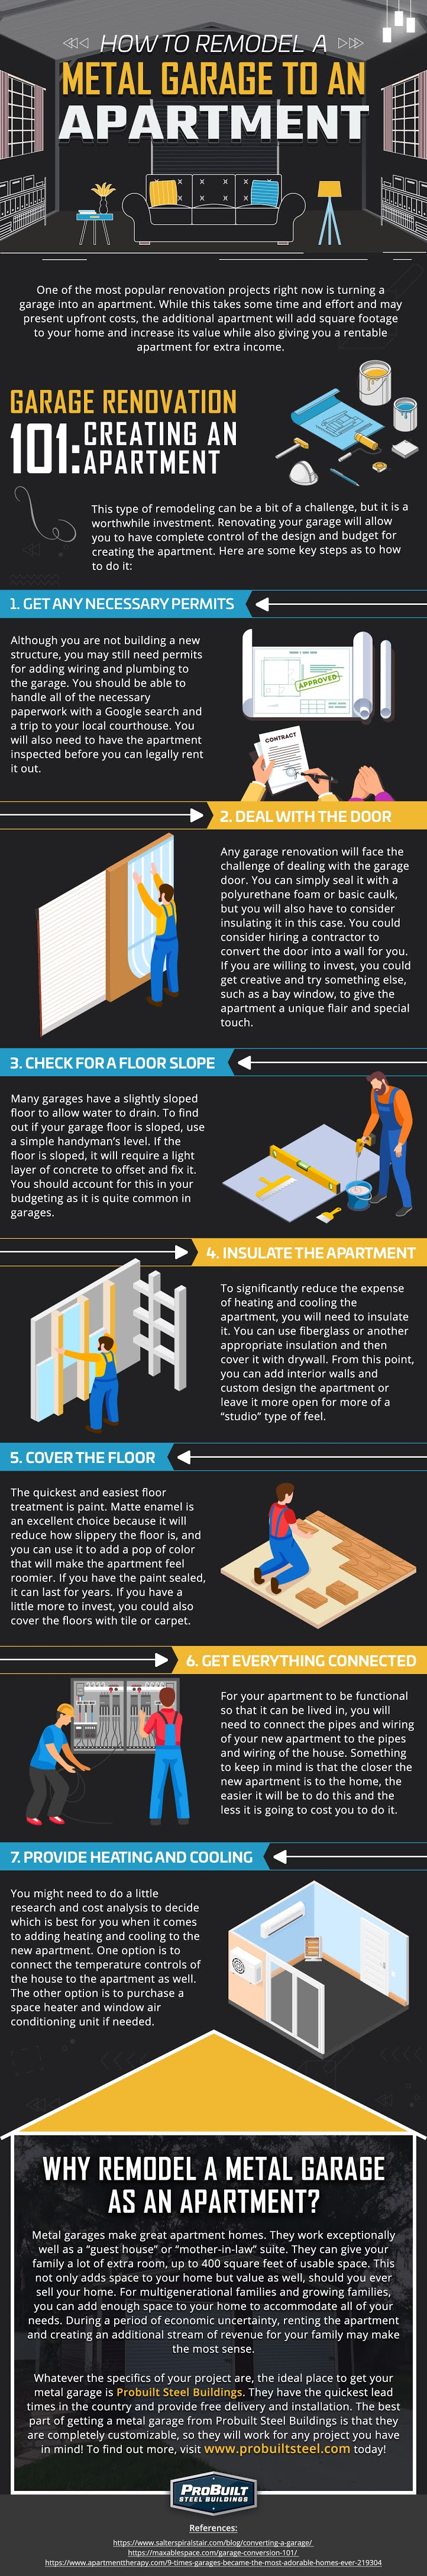 How to Remodel a Metal Garage to an Apartment? #infographic #Apartment #infographics #Metal Garage